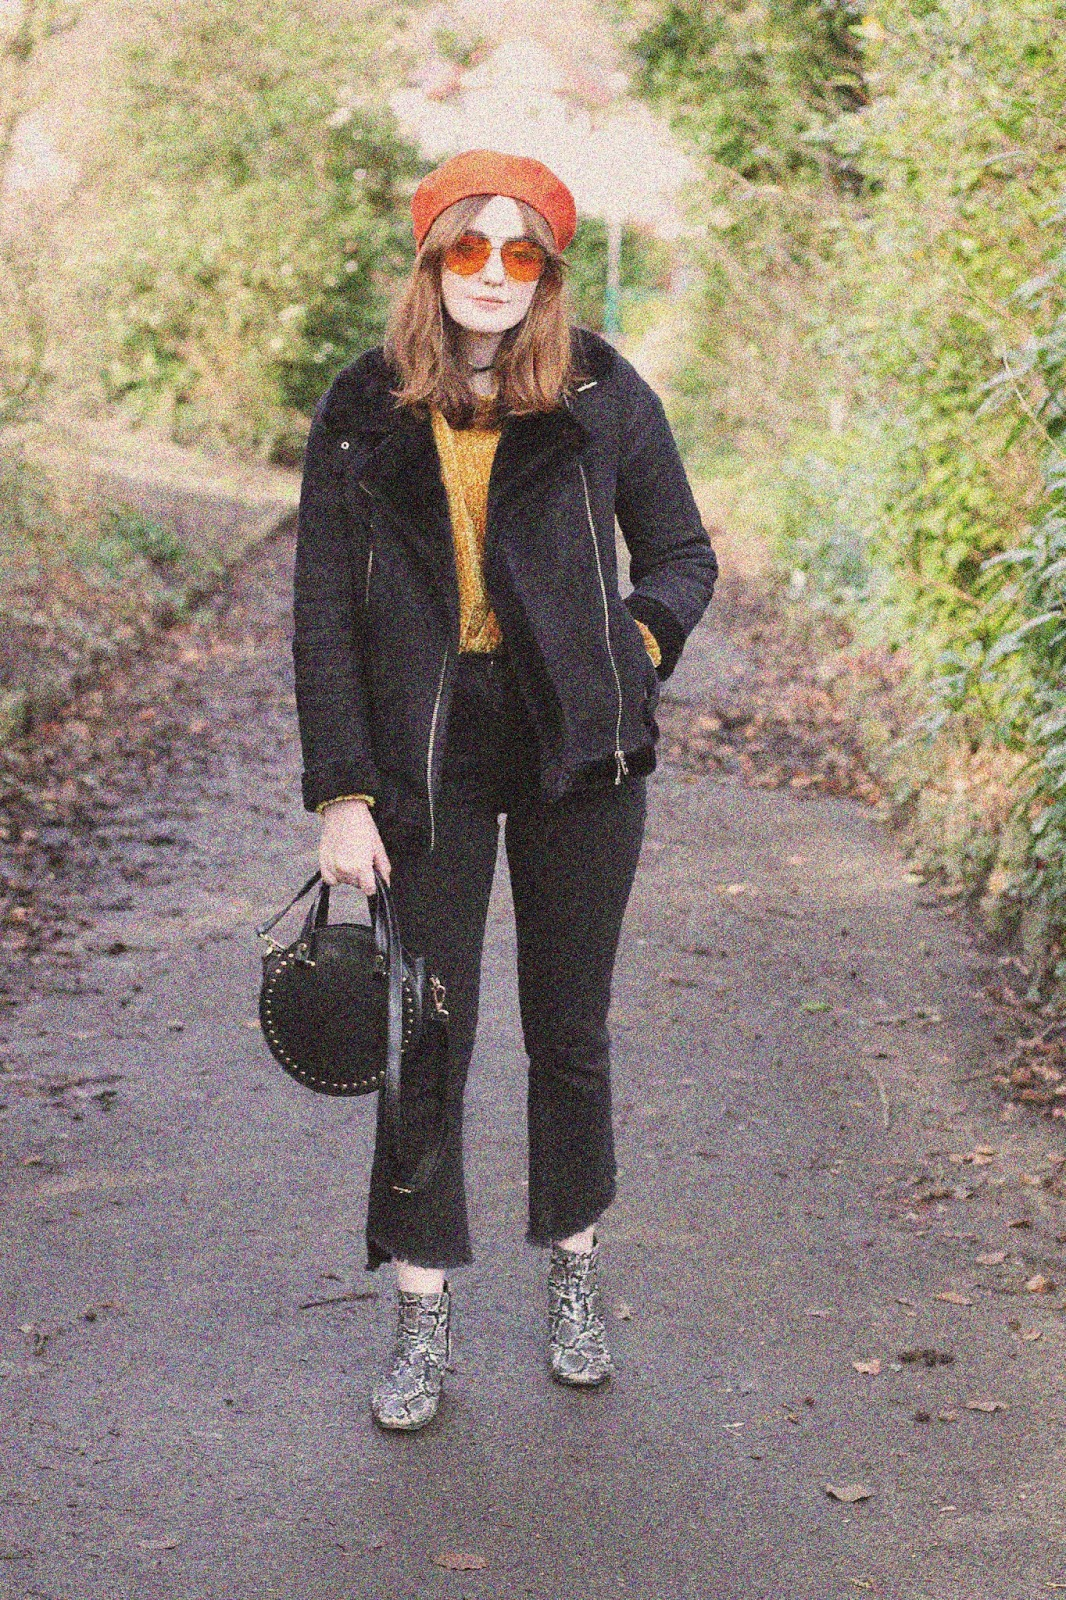 that 70s show inspired outfit featuring orange beret and aviator sunglasses, black faux shearling aviator jacket, mustard chenille jumper, black kick flare raw hem jeans and snake print ankle boots with black studded circle bag with 70s grain effect photo filter